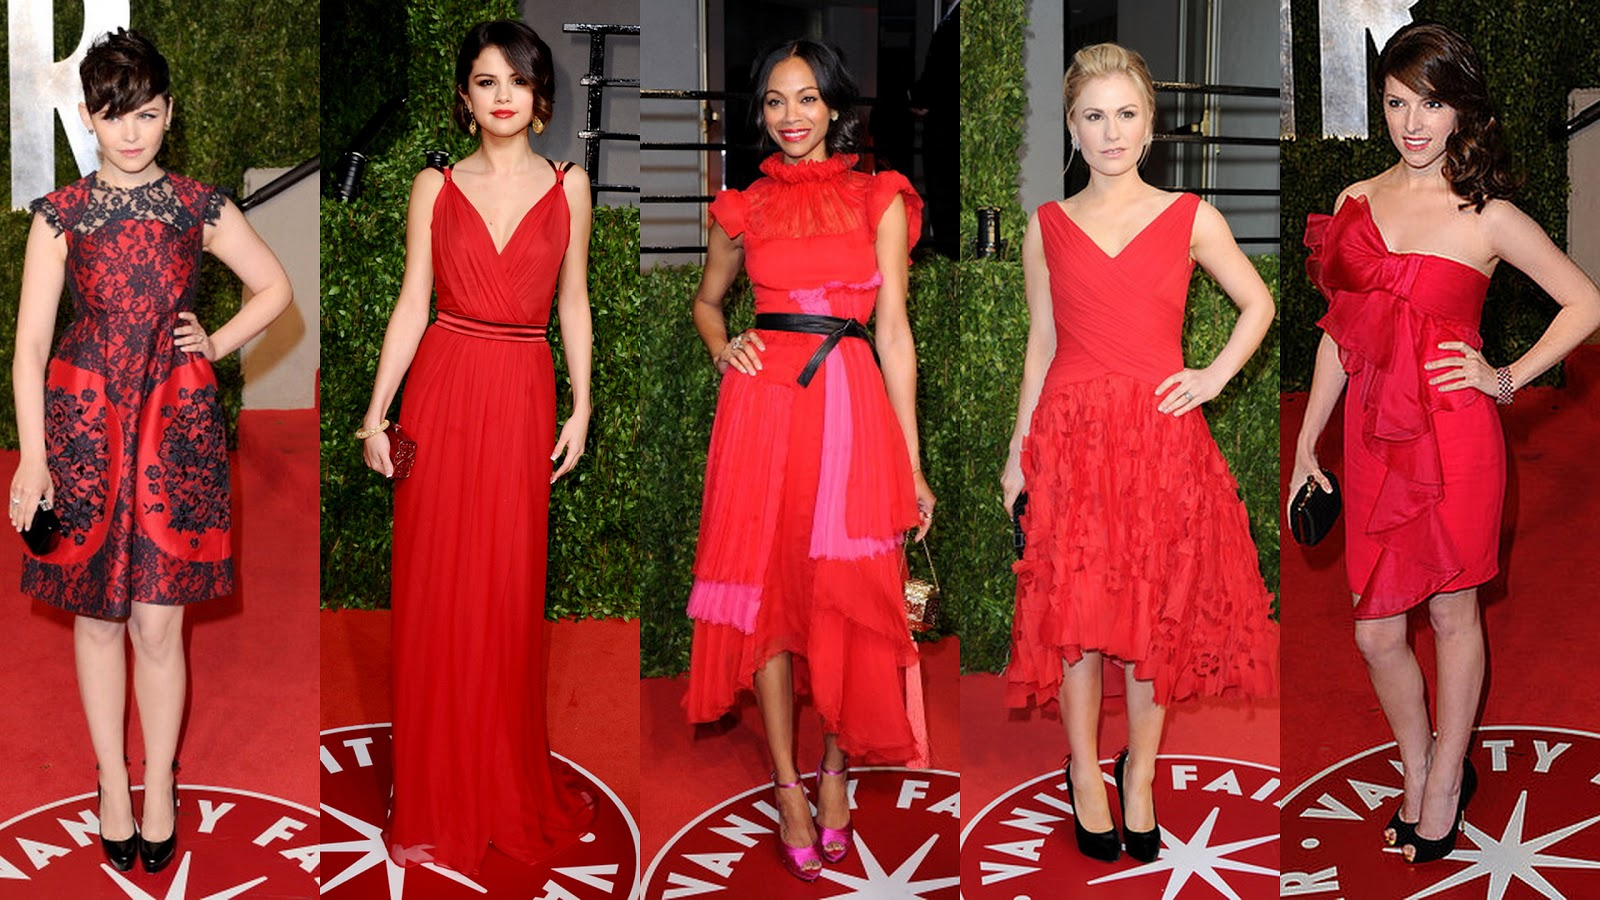 Red Dresses Ruled On And Off The Oscar Carpet Ginnifer Goodwin Dons A Quirky Satin Dress With Black Lace Detail By Erdem Salut To Selena Gomez Who